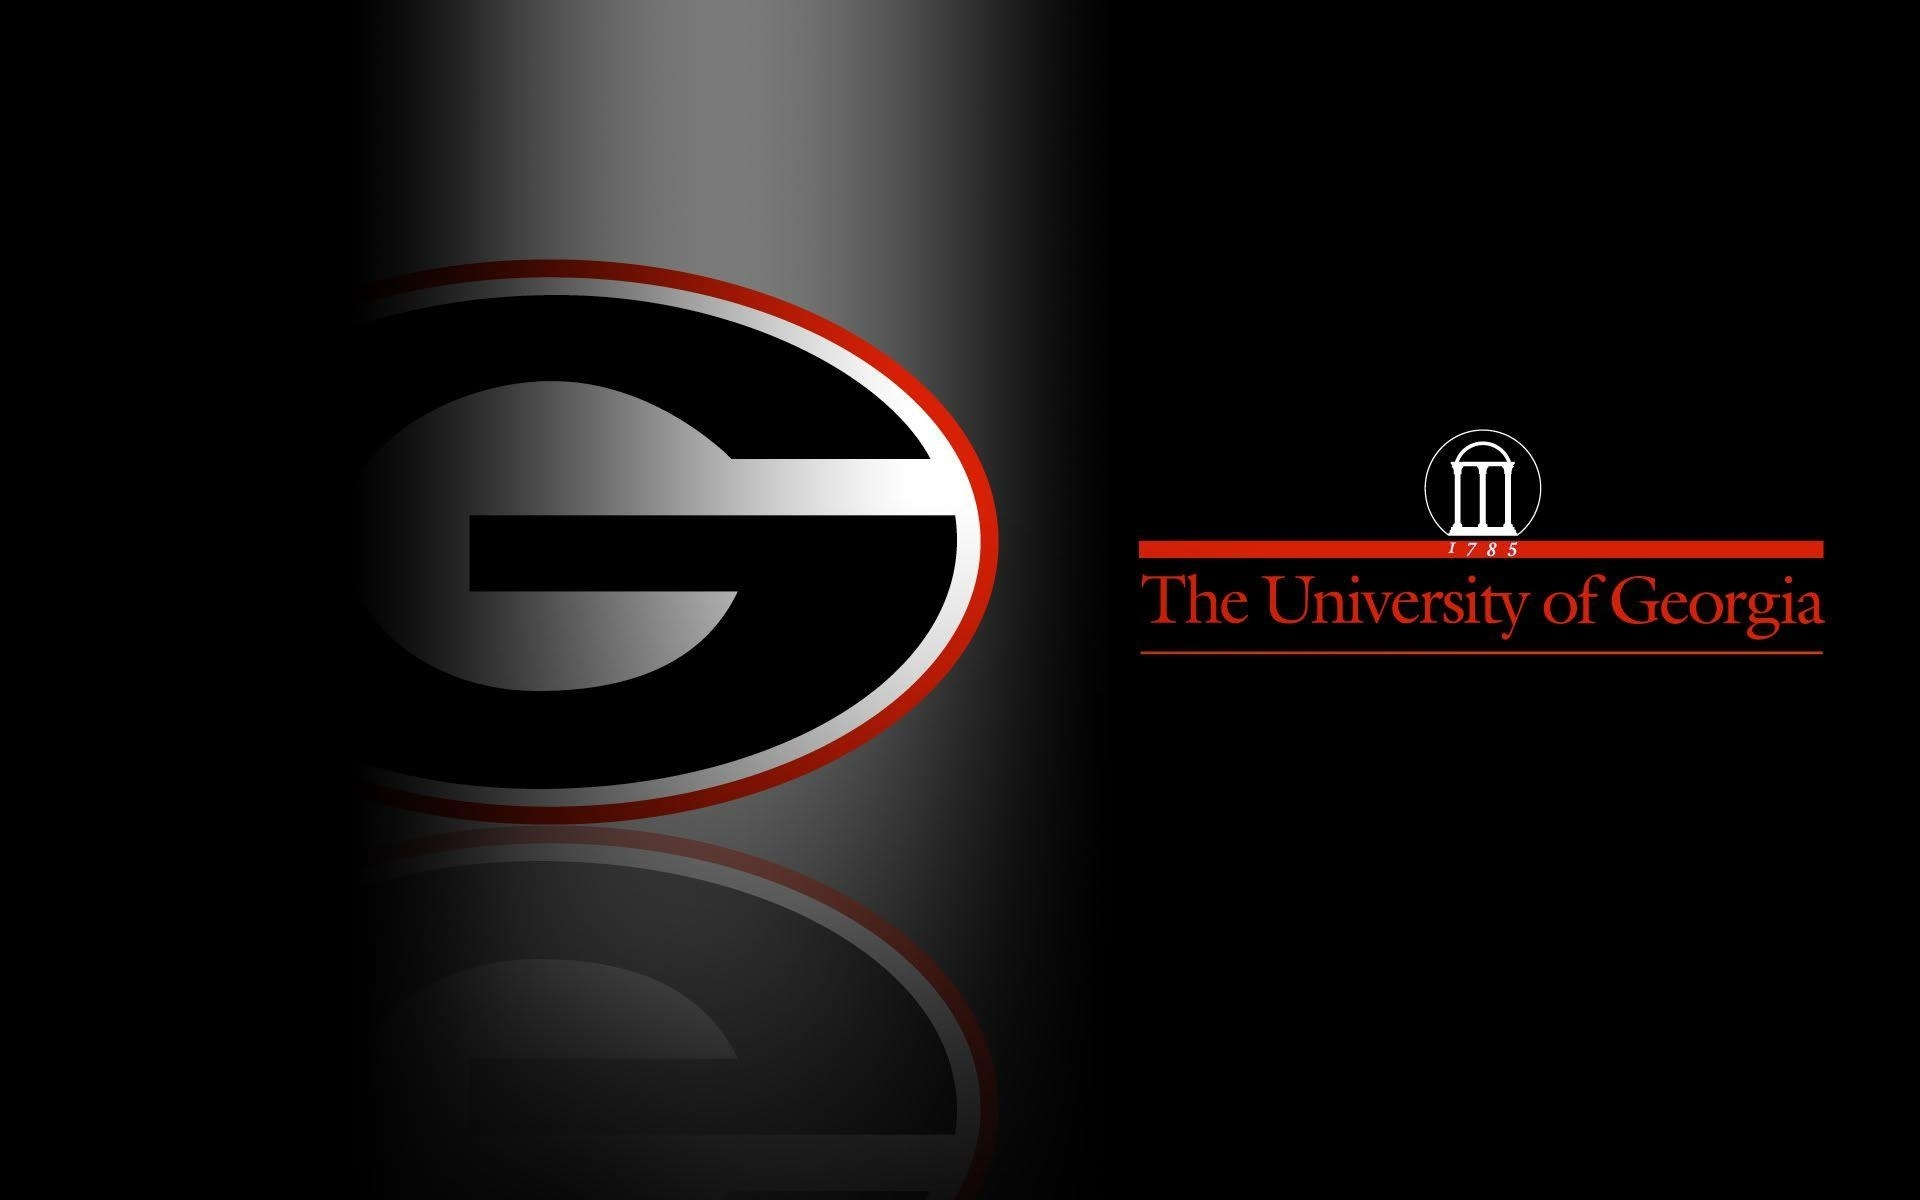 uga wallpapers - wallpaper cave